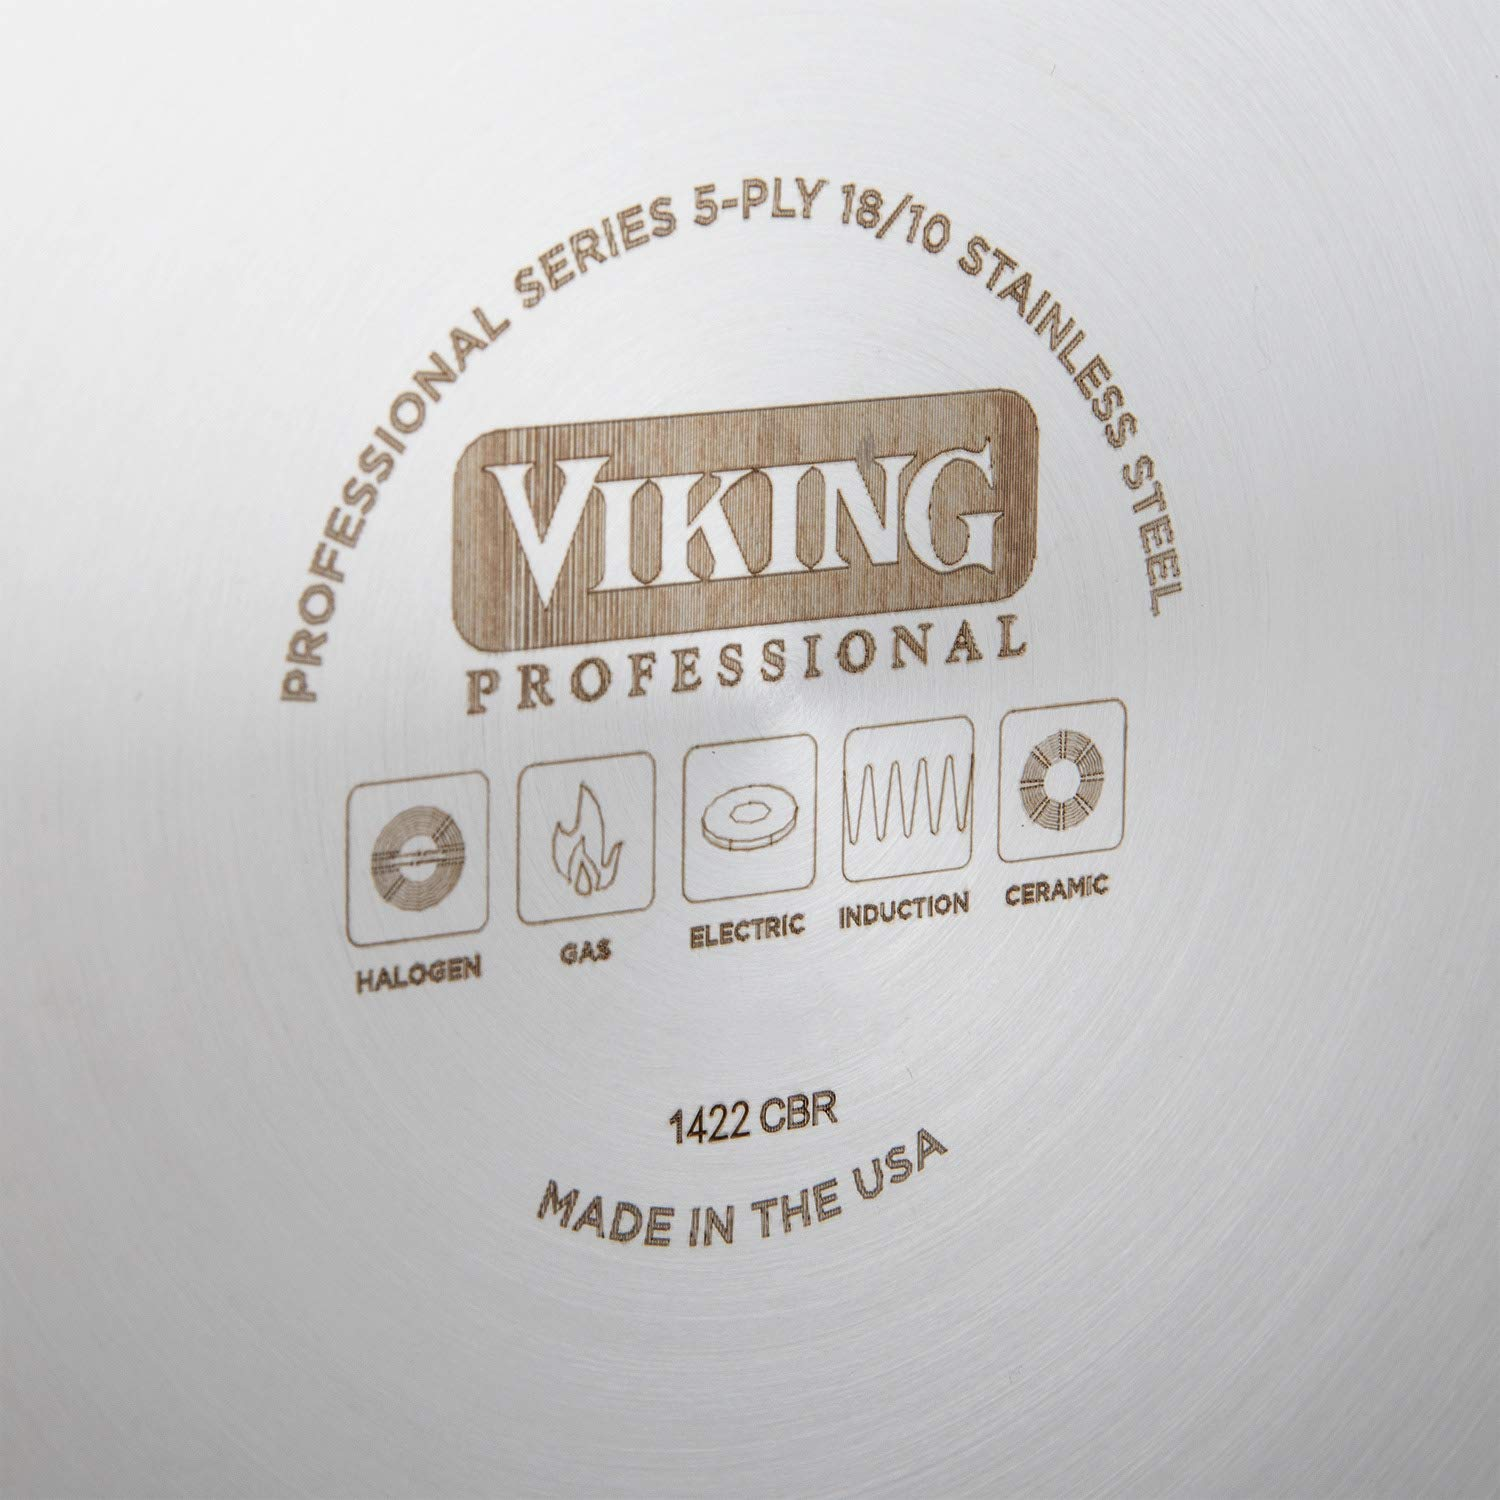 Viking Professional 5-Ply Stainless Steel Nonstick Fry Pan 8 Inch